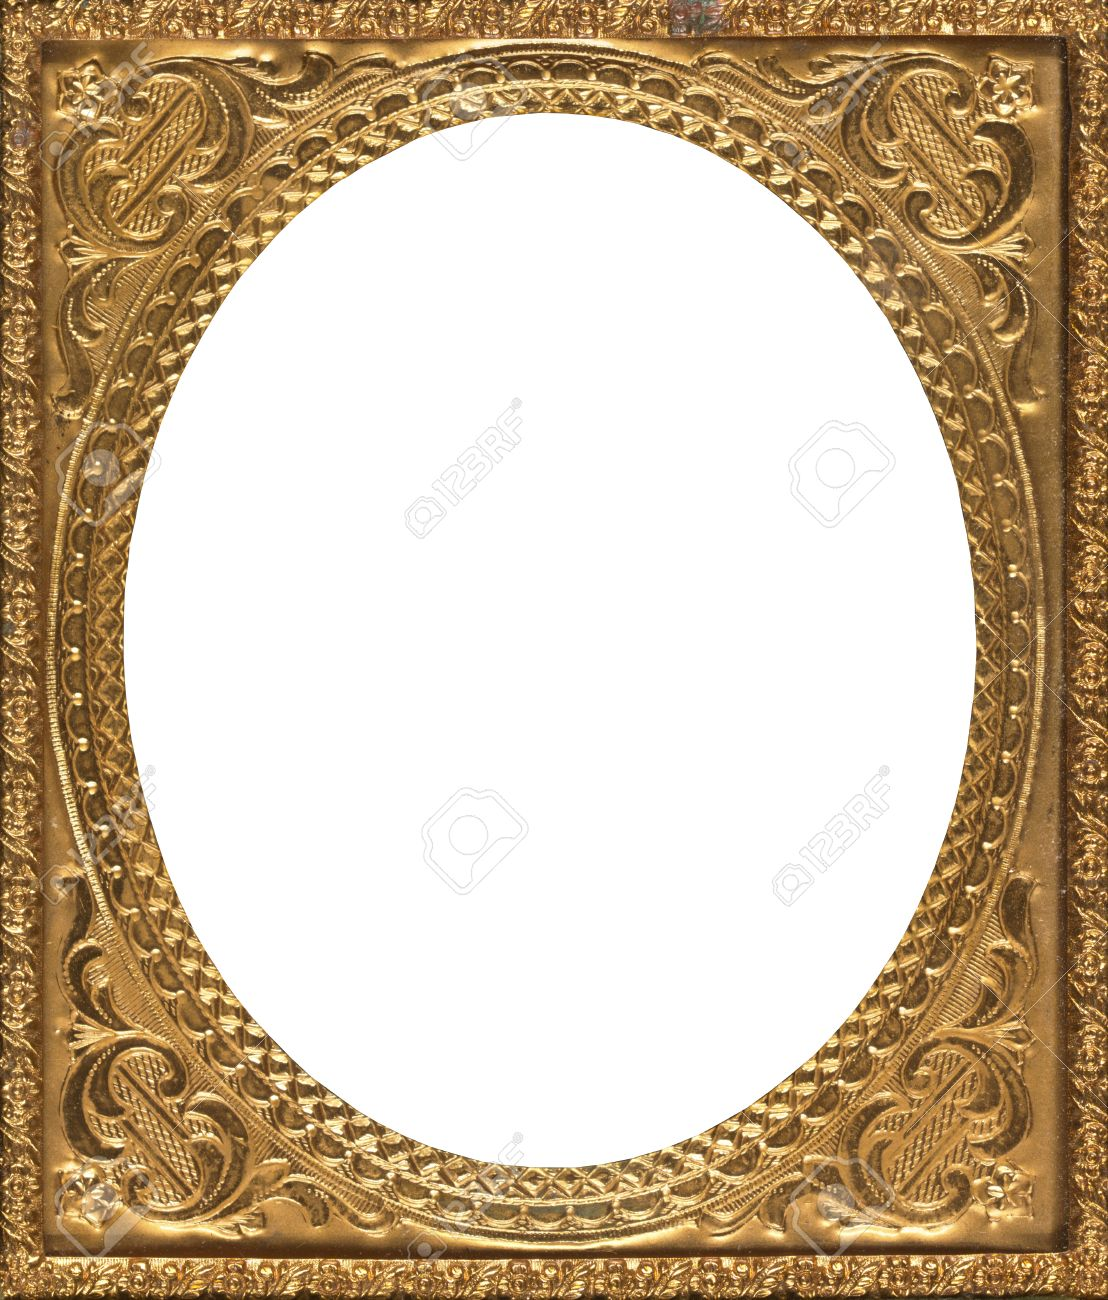 oval shaped antique gold frame mid 19th century stock photo 21076908